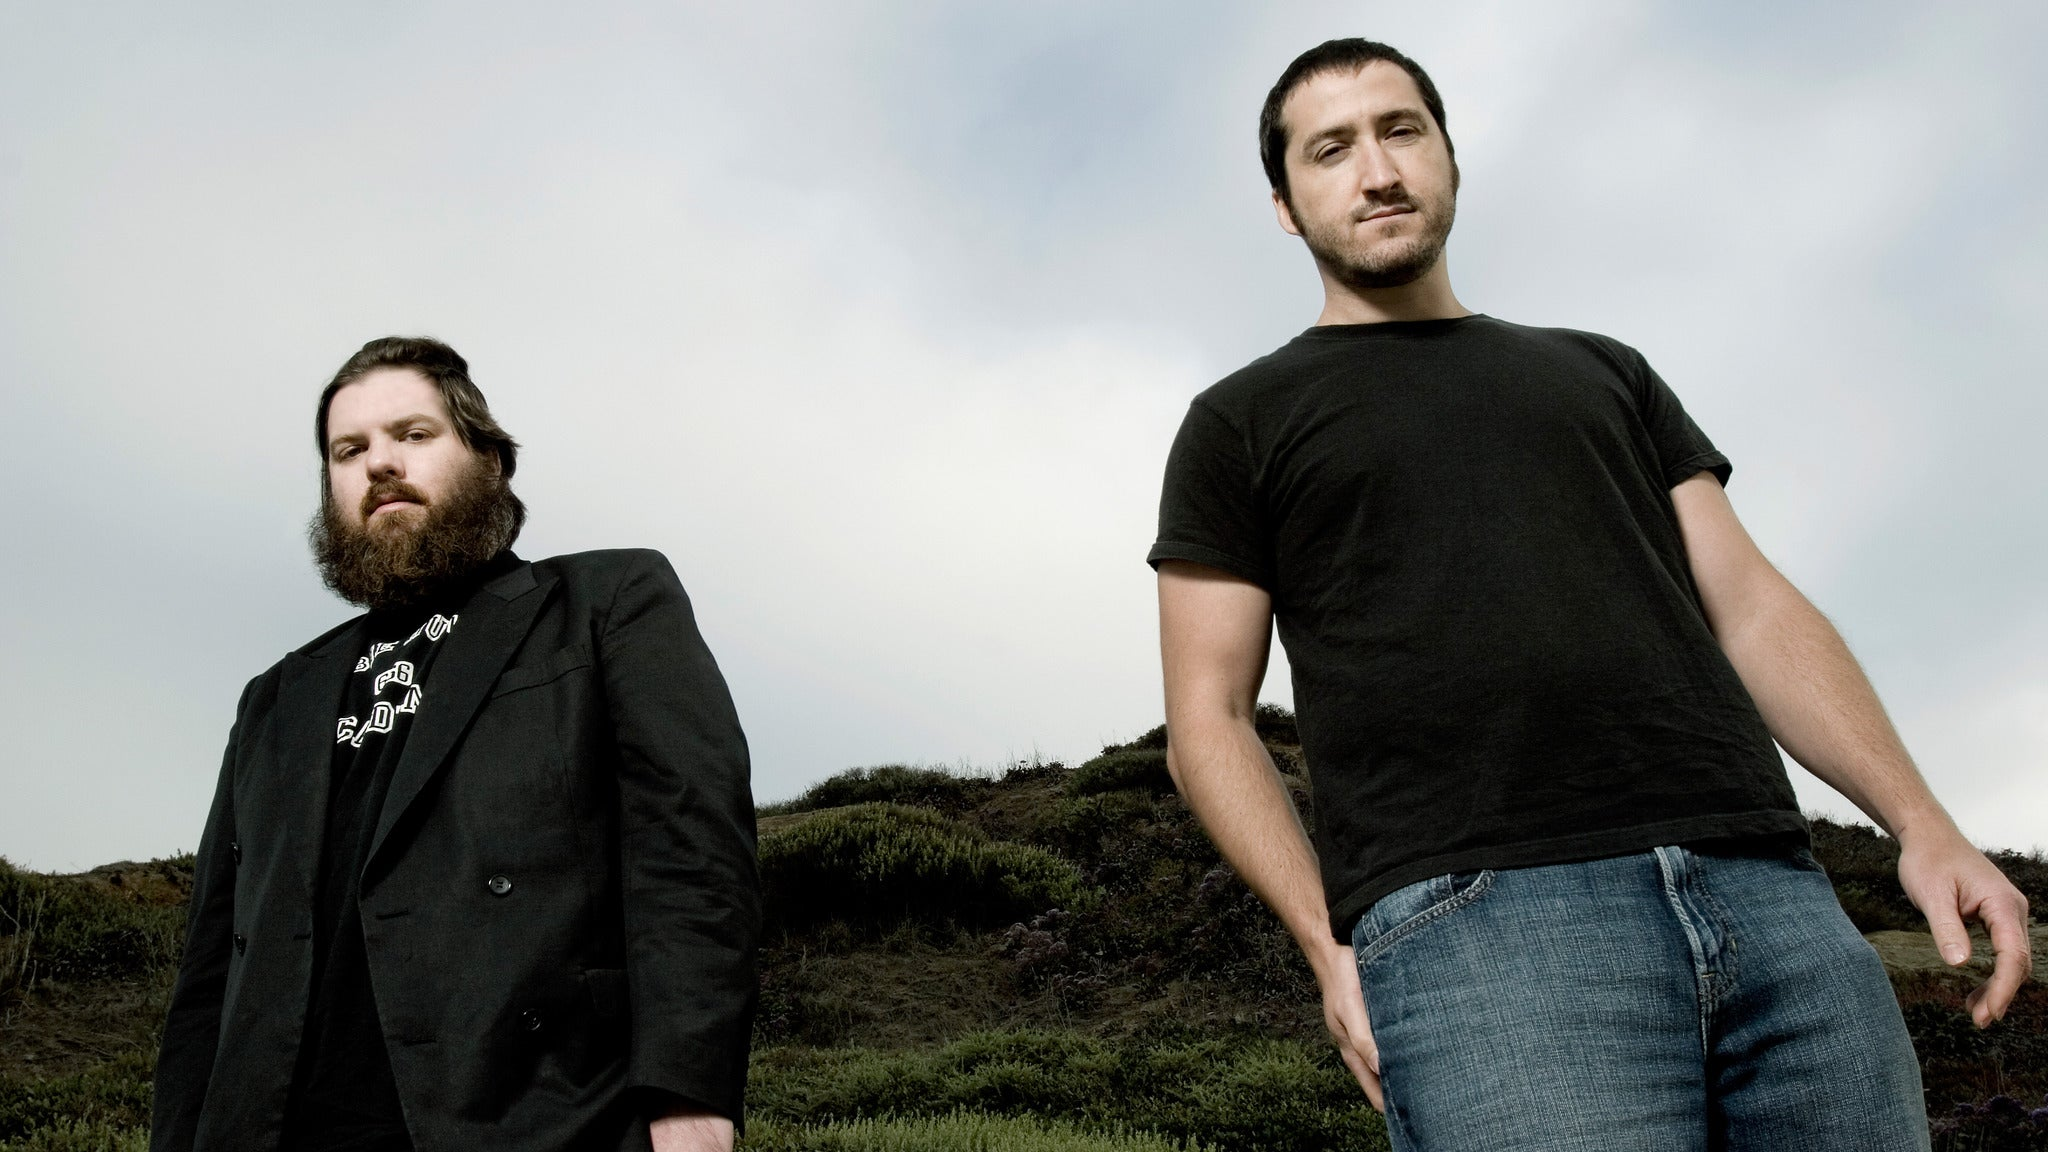 2 Day Ticket: Pinback - Monday 10/02 and Tuesday 10/03